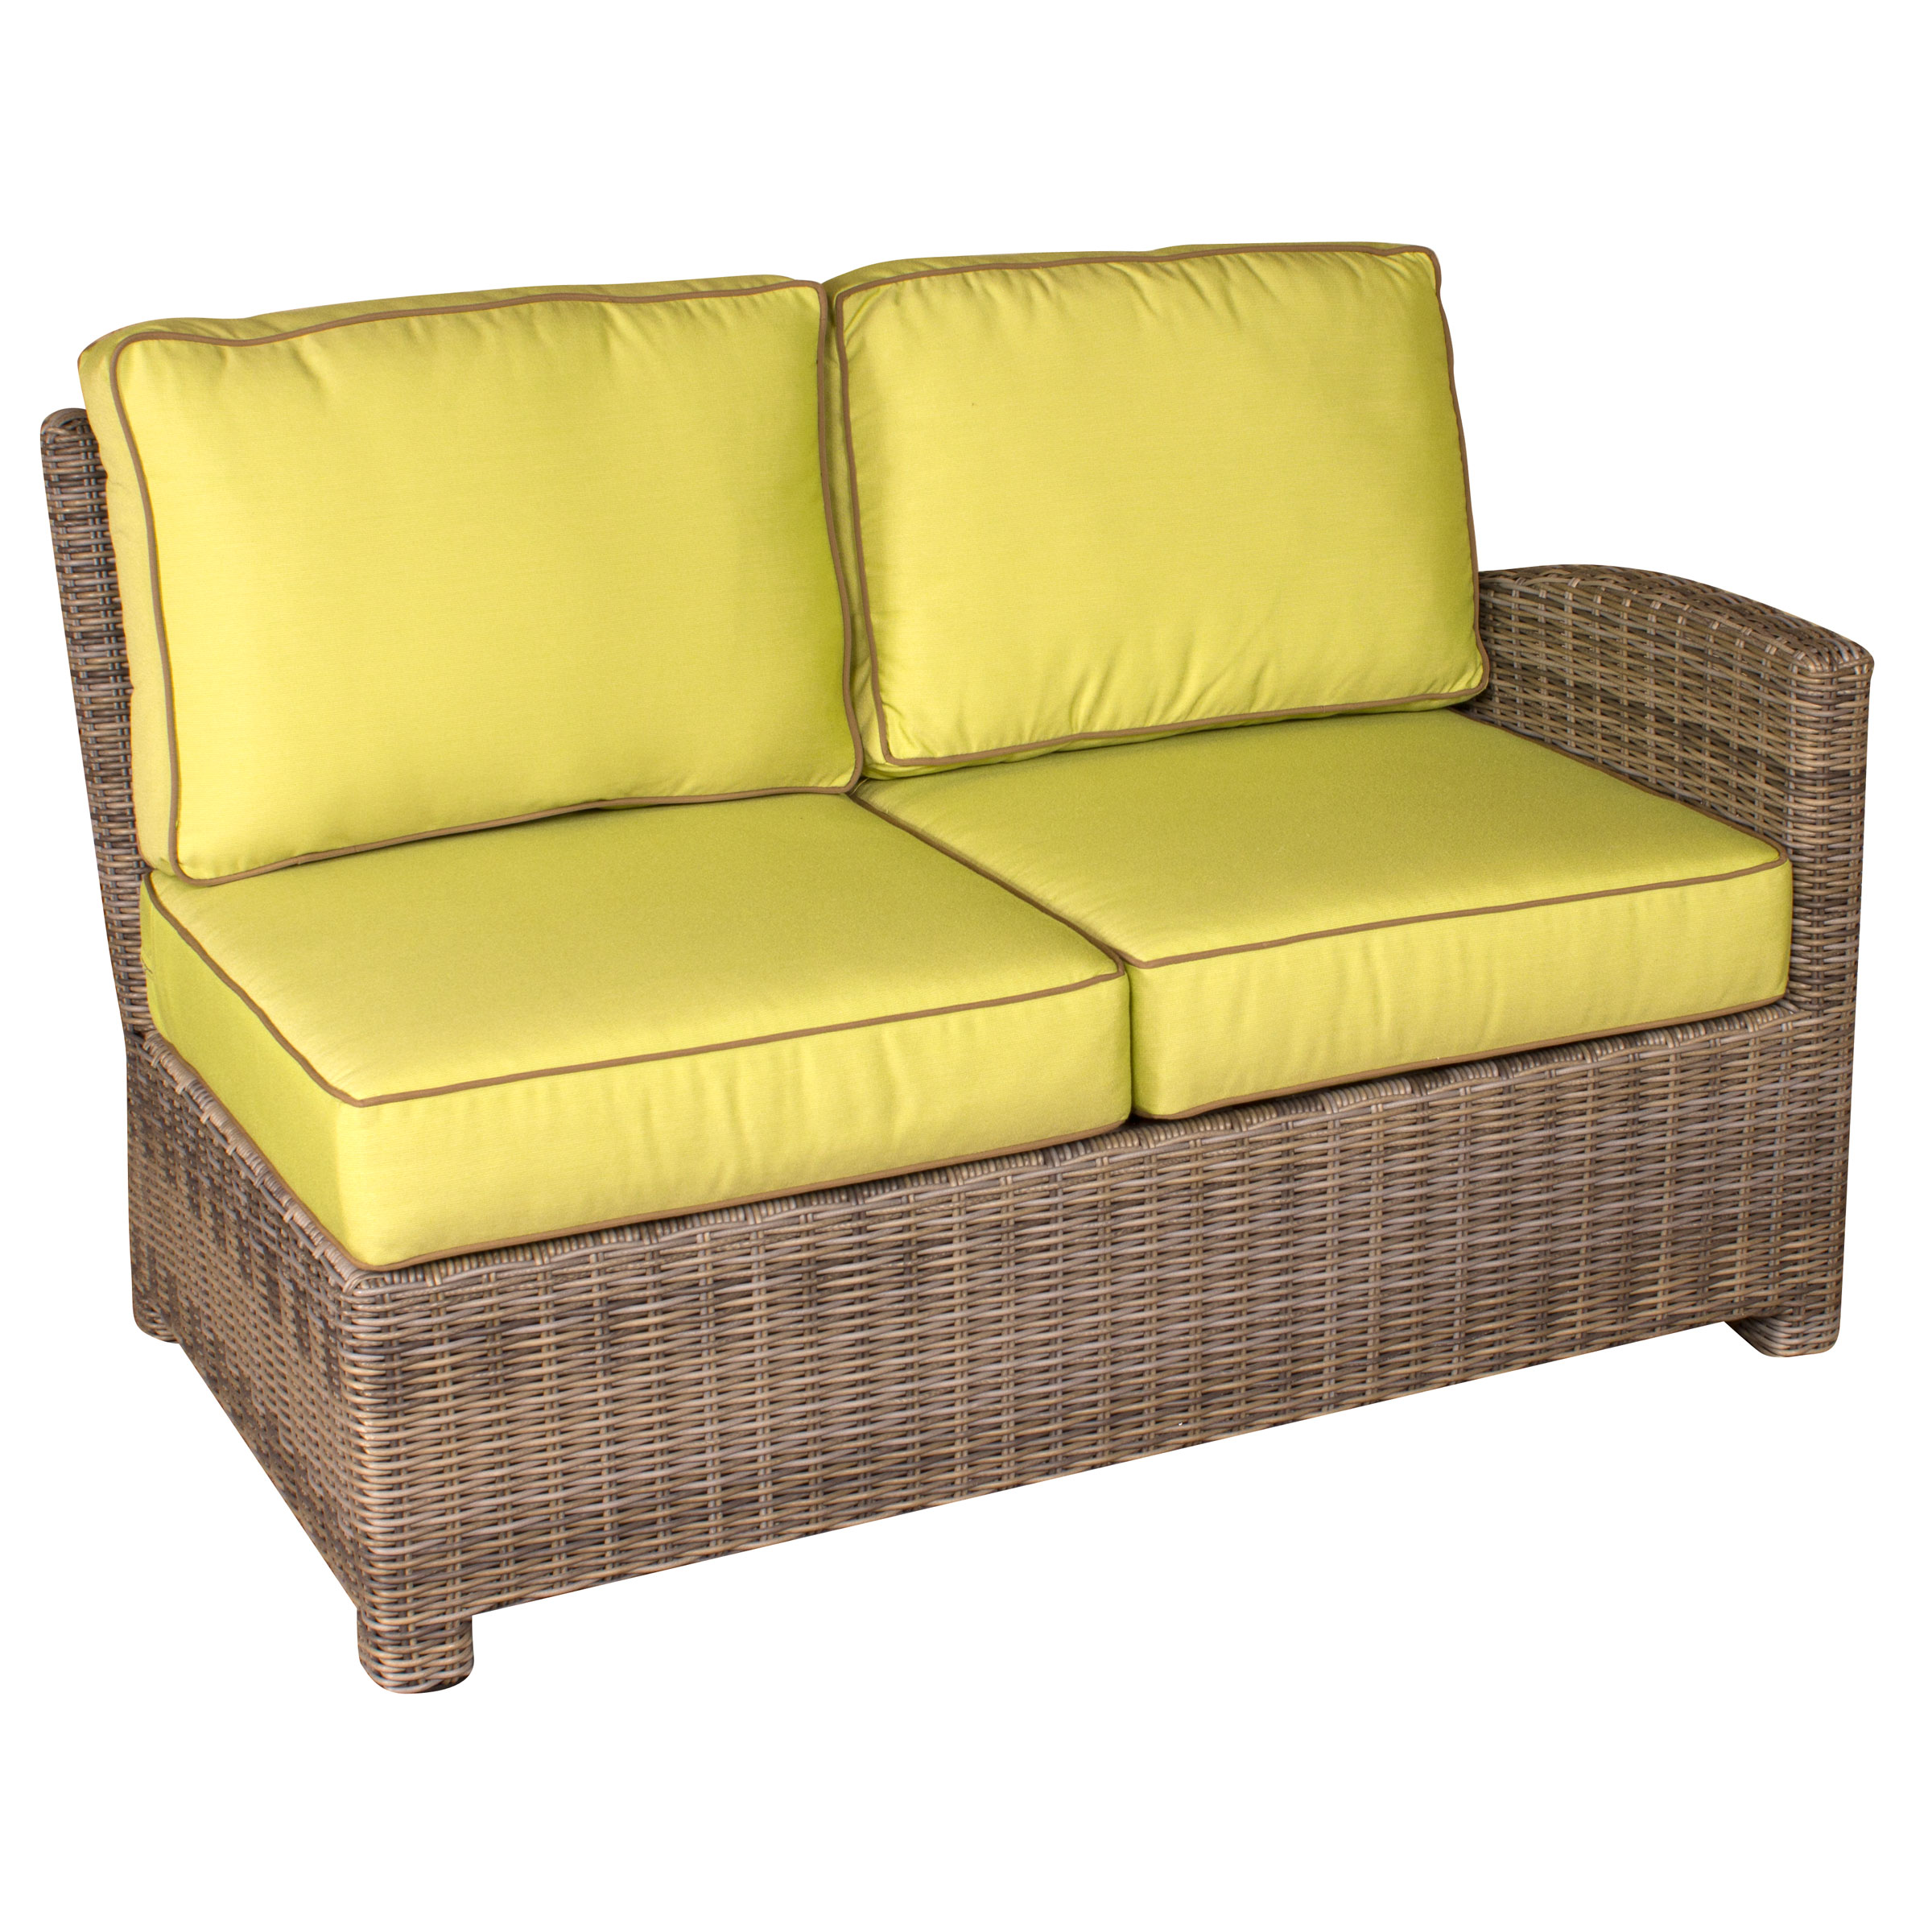 CATALINA RIGHT ARM LOVE SEAT RC807 GRADE A $820.00 GRADE B $870.00 GRADE C $920.00